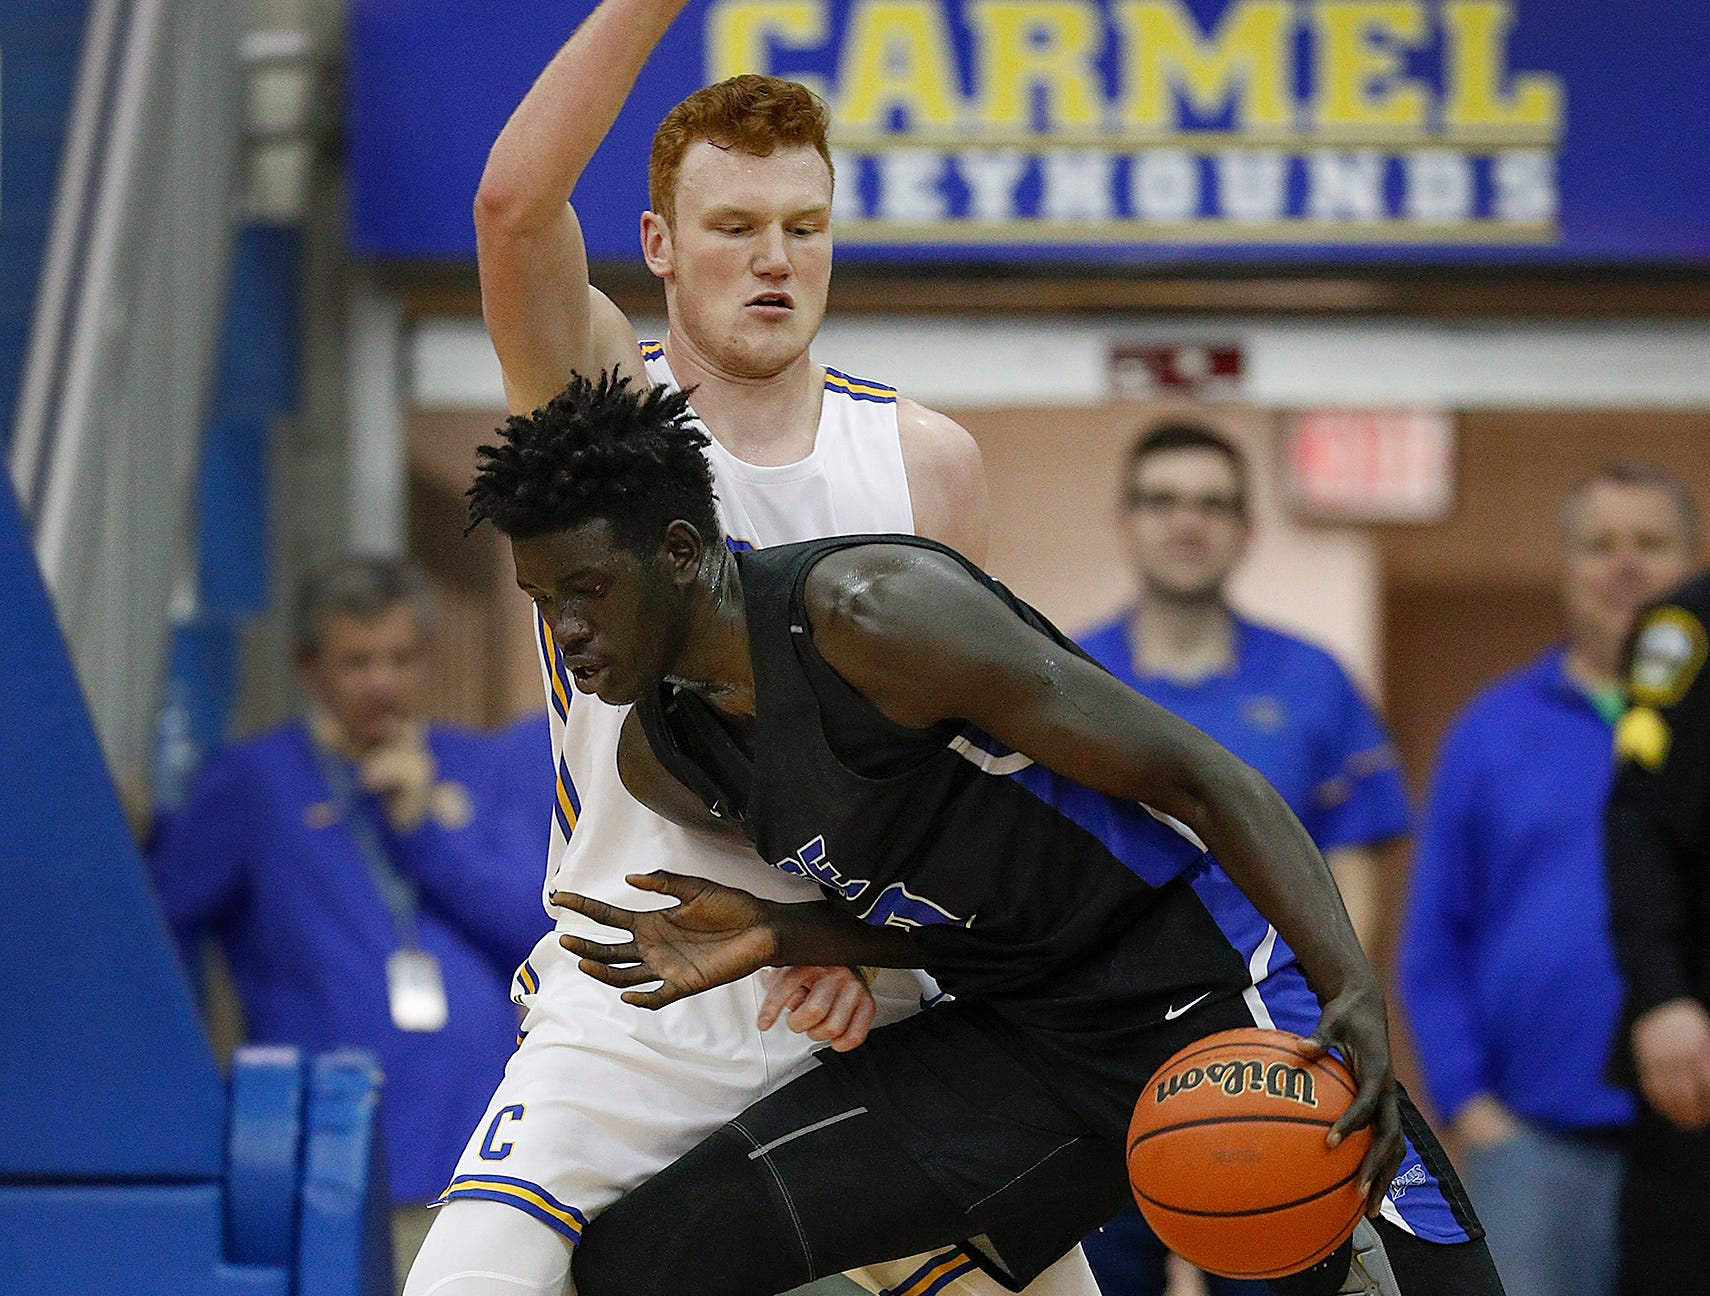 Hamilton Southeastern Royals Mabor Majak (50) drives to the basket on Carmel Greyhounds John Michael Mulloy (33) in the first half of their game at Carmel High School on Friday, Feb. 8, 2019.